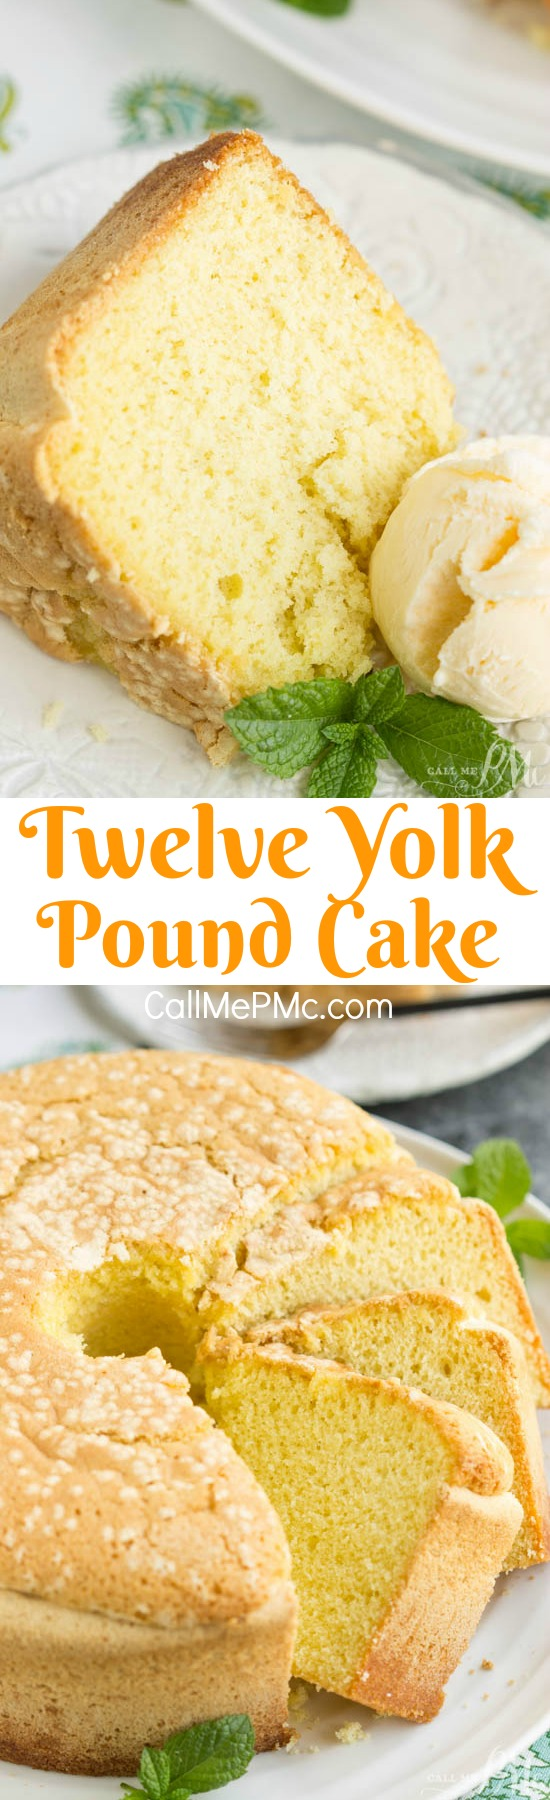 A great use of leftover egg yolks, Twelve Yolk Pound Cake, is golden and creamy. A great basic cake that's not overly sweet. Serve this with a good vanilla ice cream and rich caramel sauce. Twelve Yolk Pound Cake is versatile, buttery, and delicious.